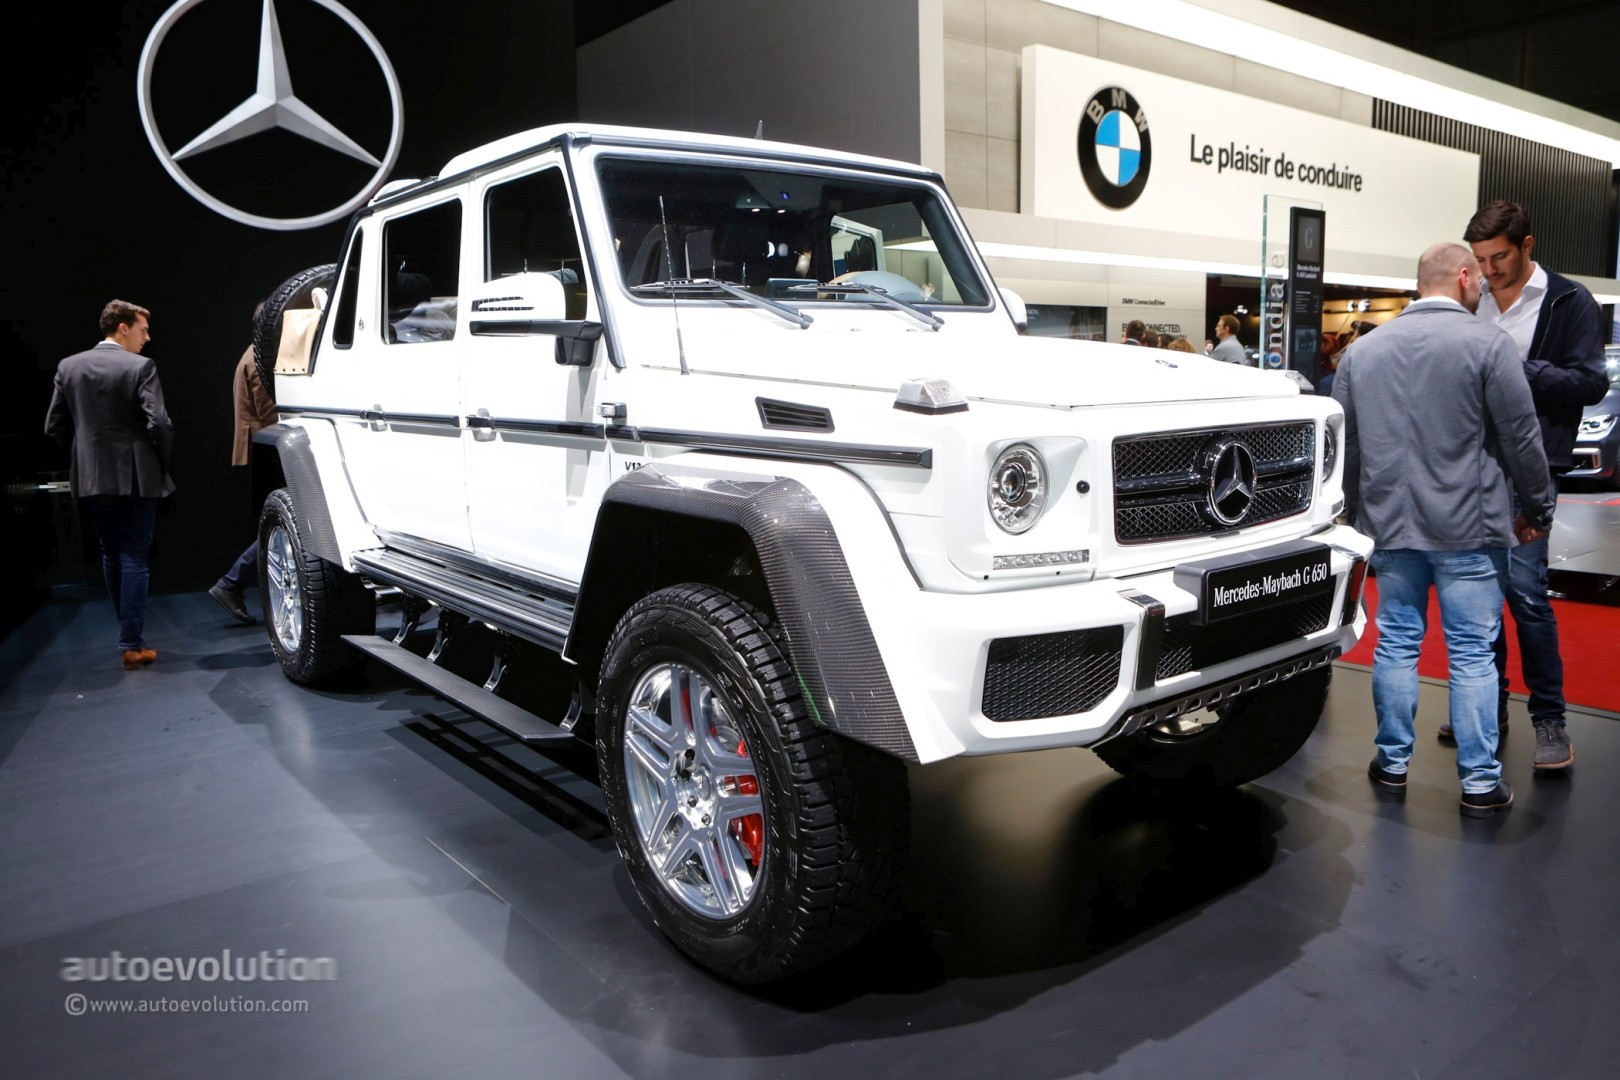 https://s1.cdn.autoevolution.com/images/news/gallery/one-example-of-the-2018-mercedes-maybach-g650-landaulet-is-heading-to-auction_7.jpg